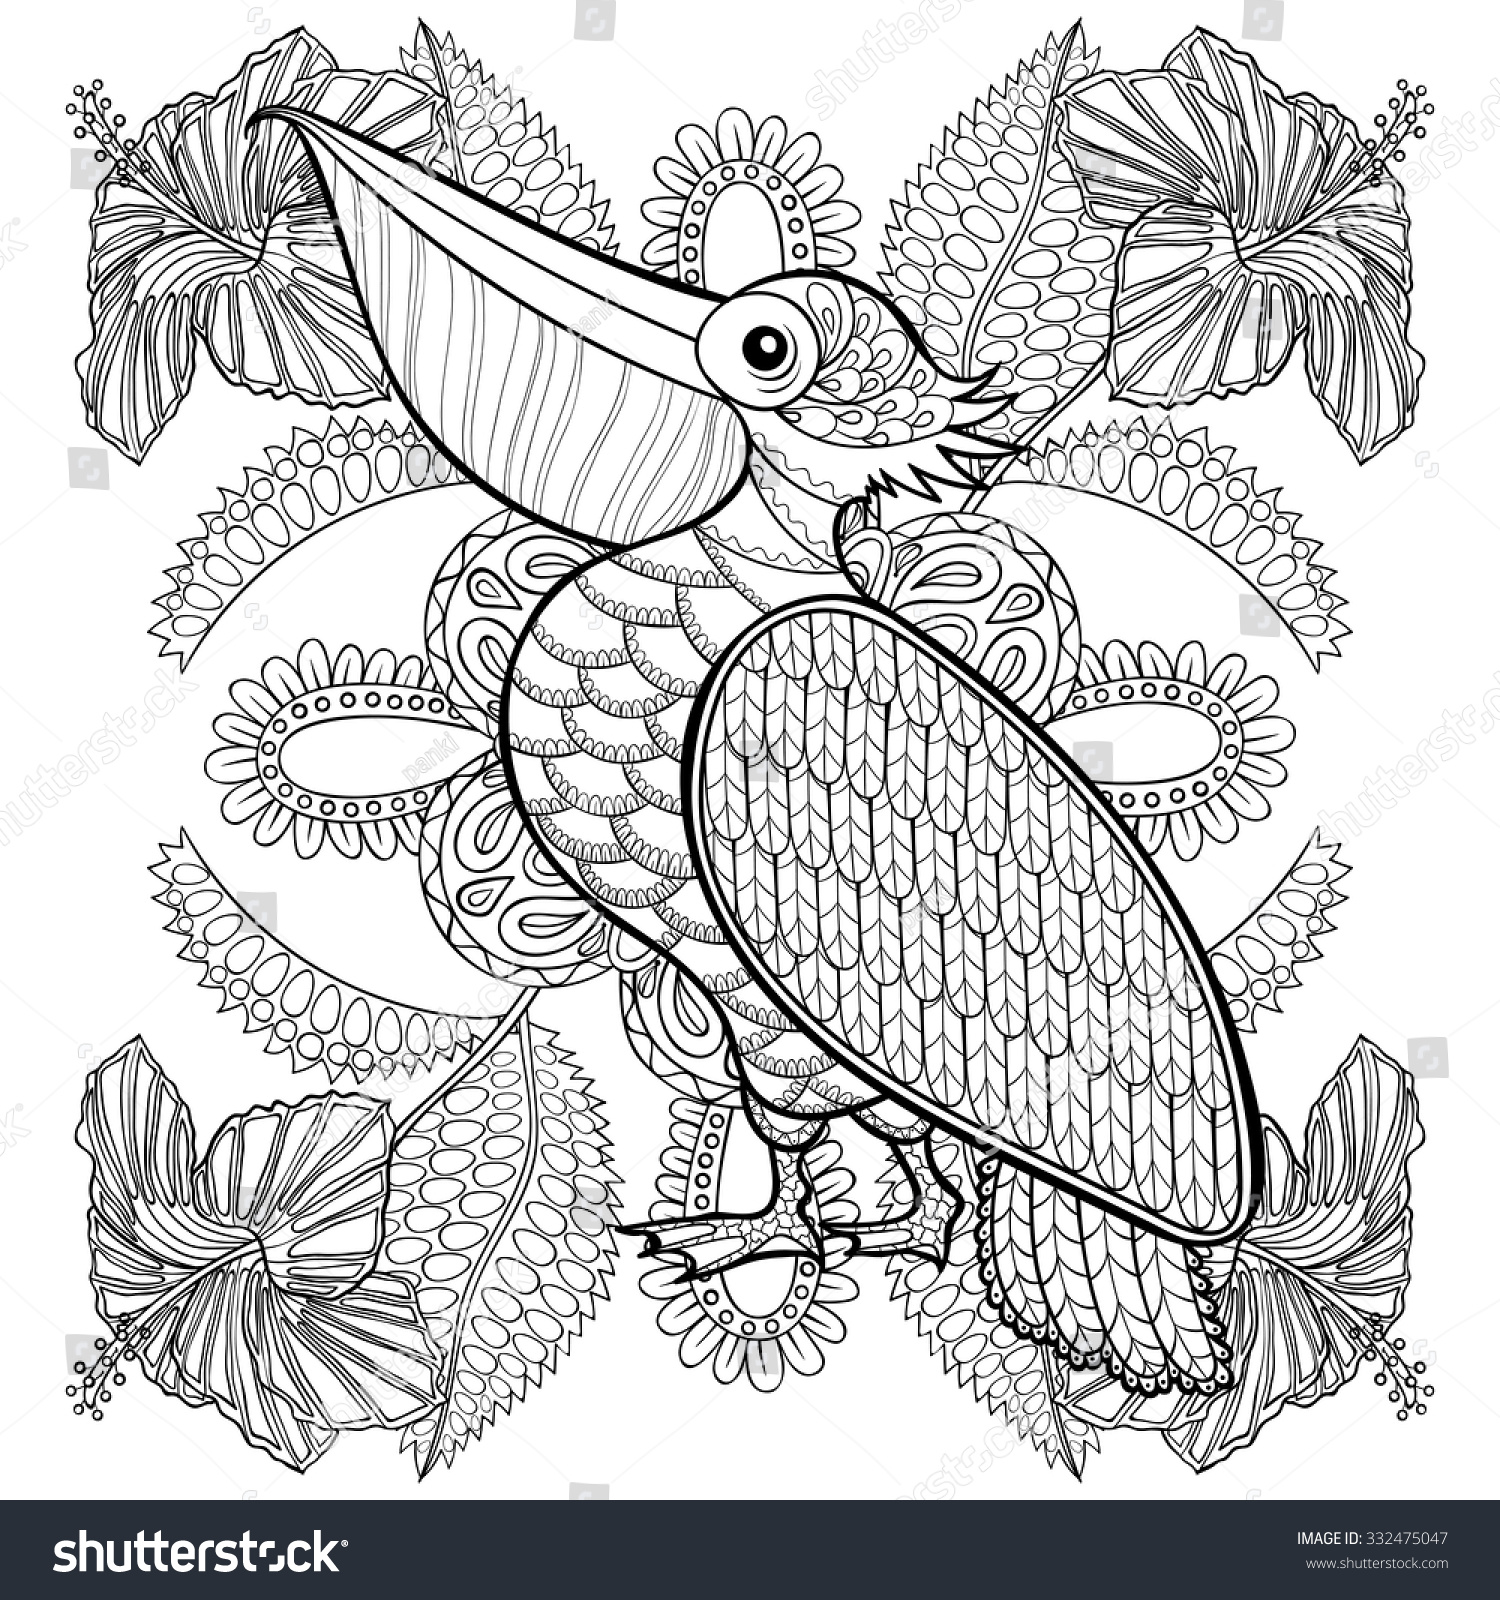 Adult Coloring Pages Puffin